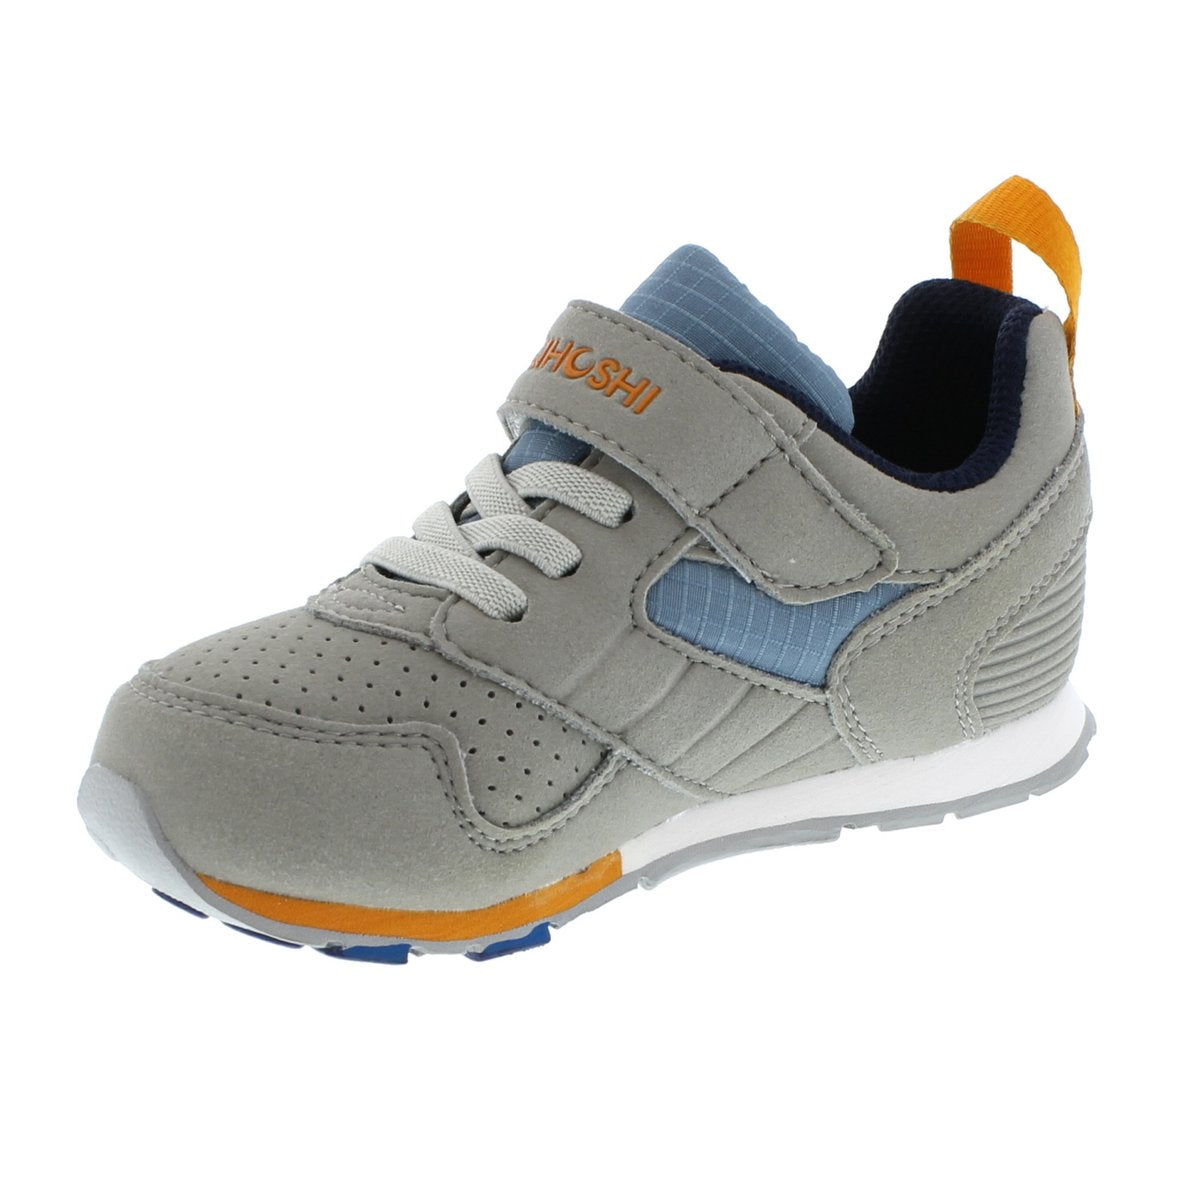 Child Tsukihoshi Racer Sneaker in Gray/Sea from the front view